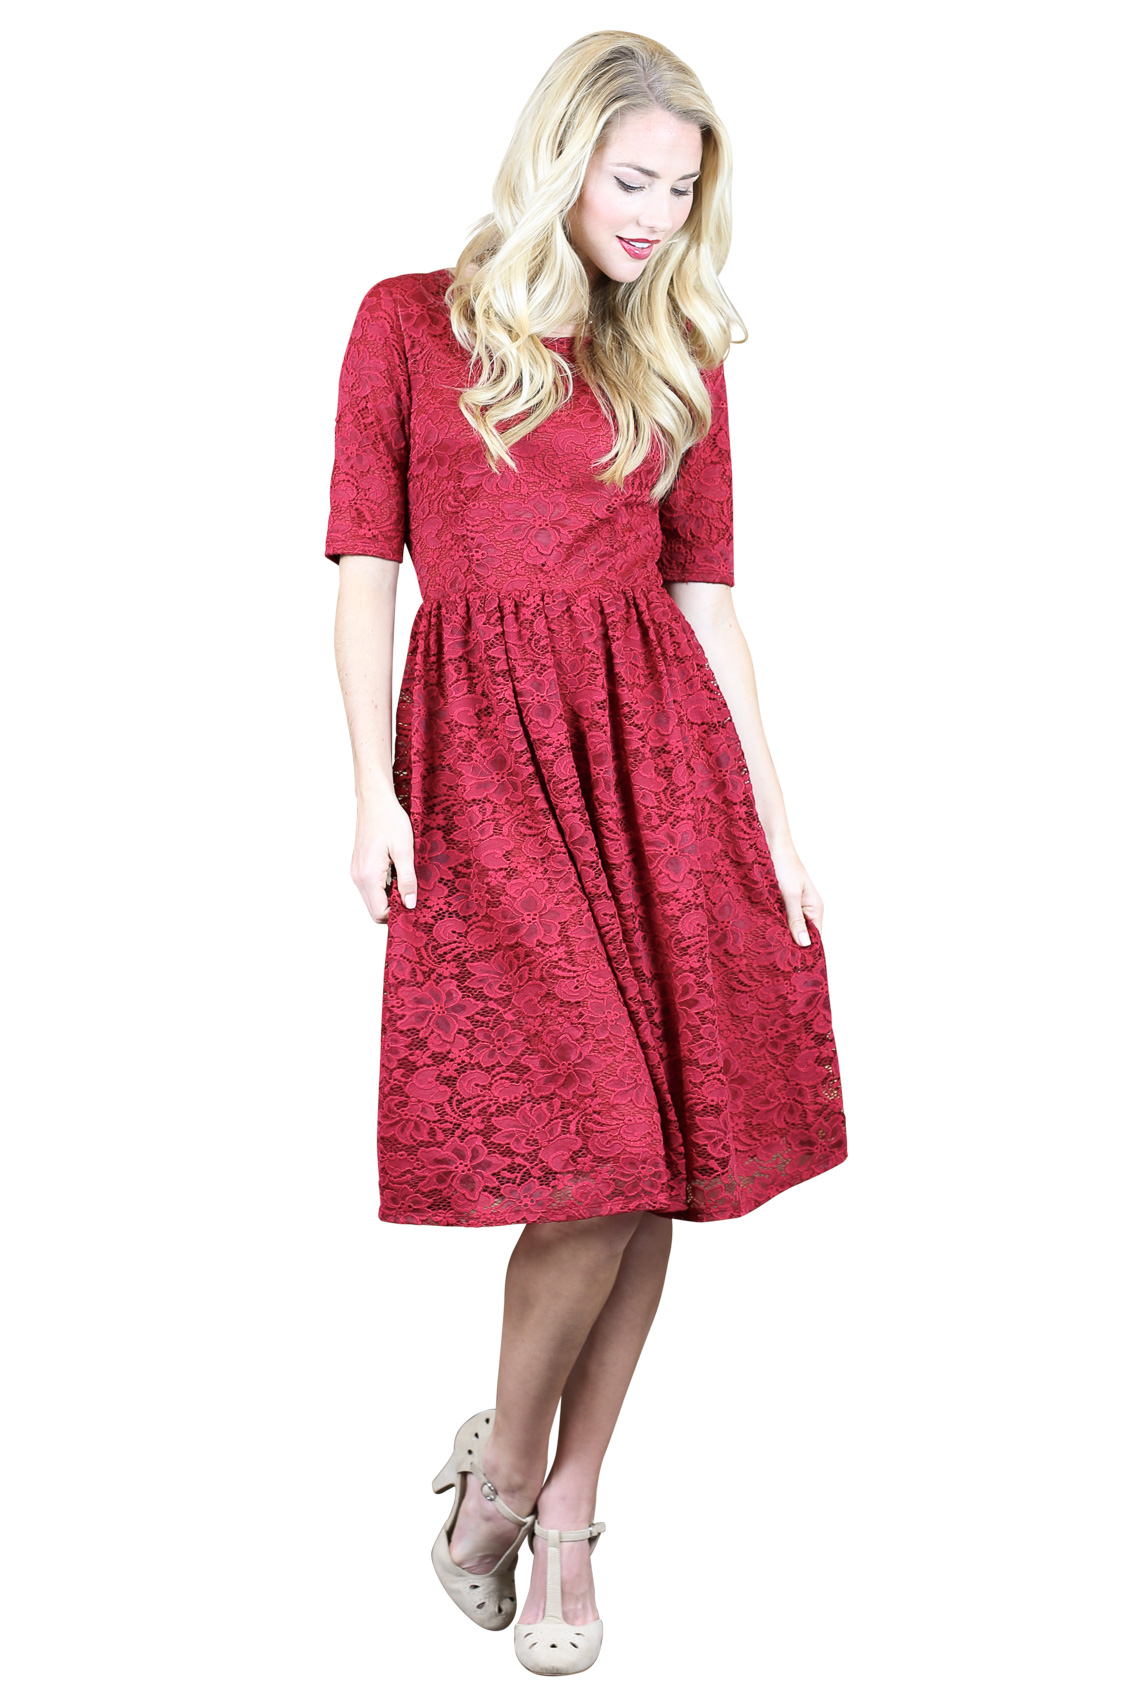 Haley Modest Bridesmaid Dress in Berry Red Lace|Modest ...